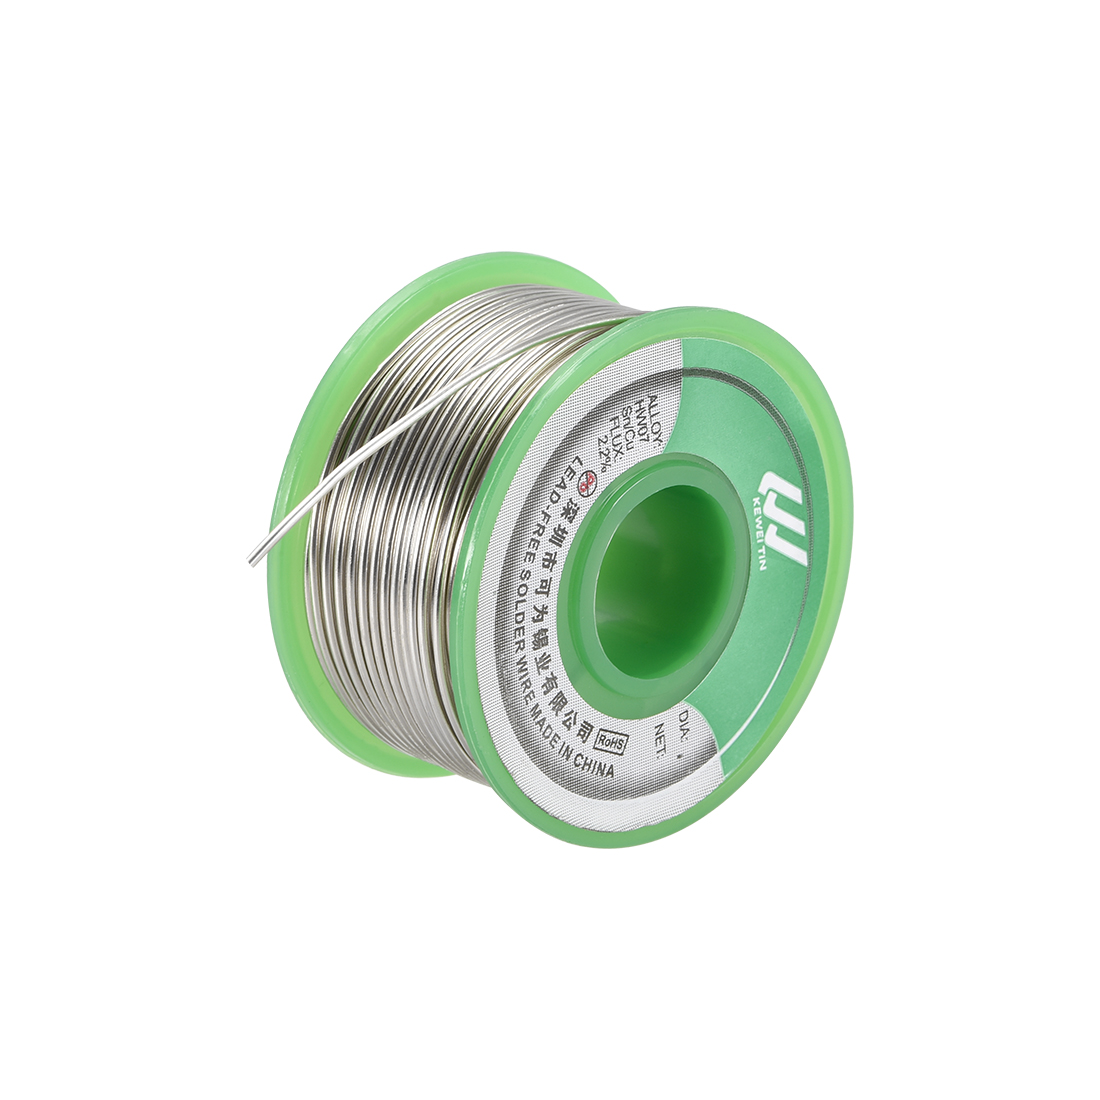 Lead Free Solder Wire 1.2mm 100g Sn99.3% Cu0.7% with Rosin Core for Soldering